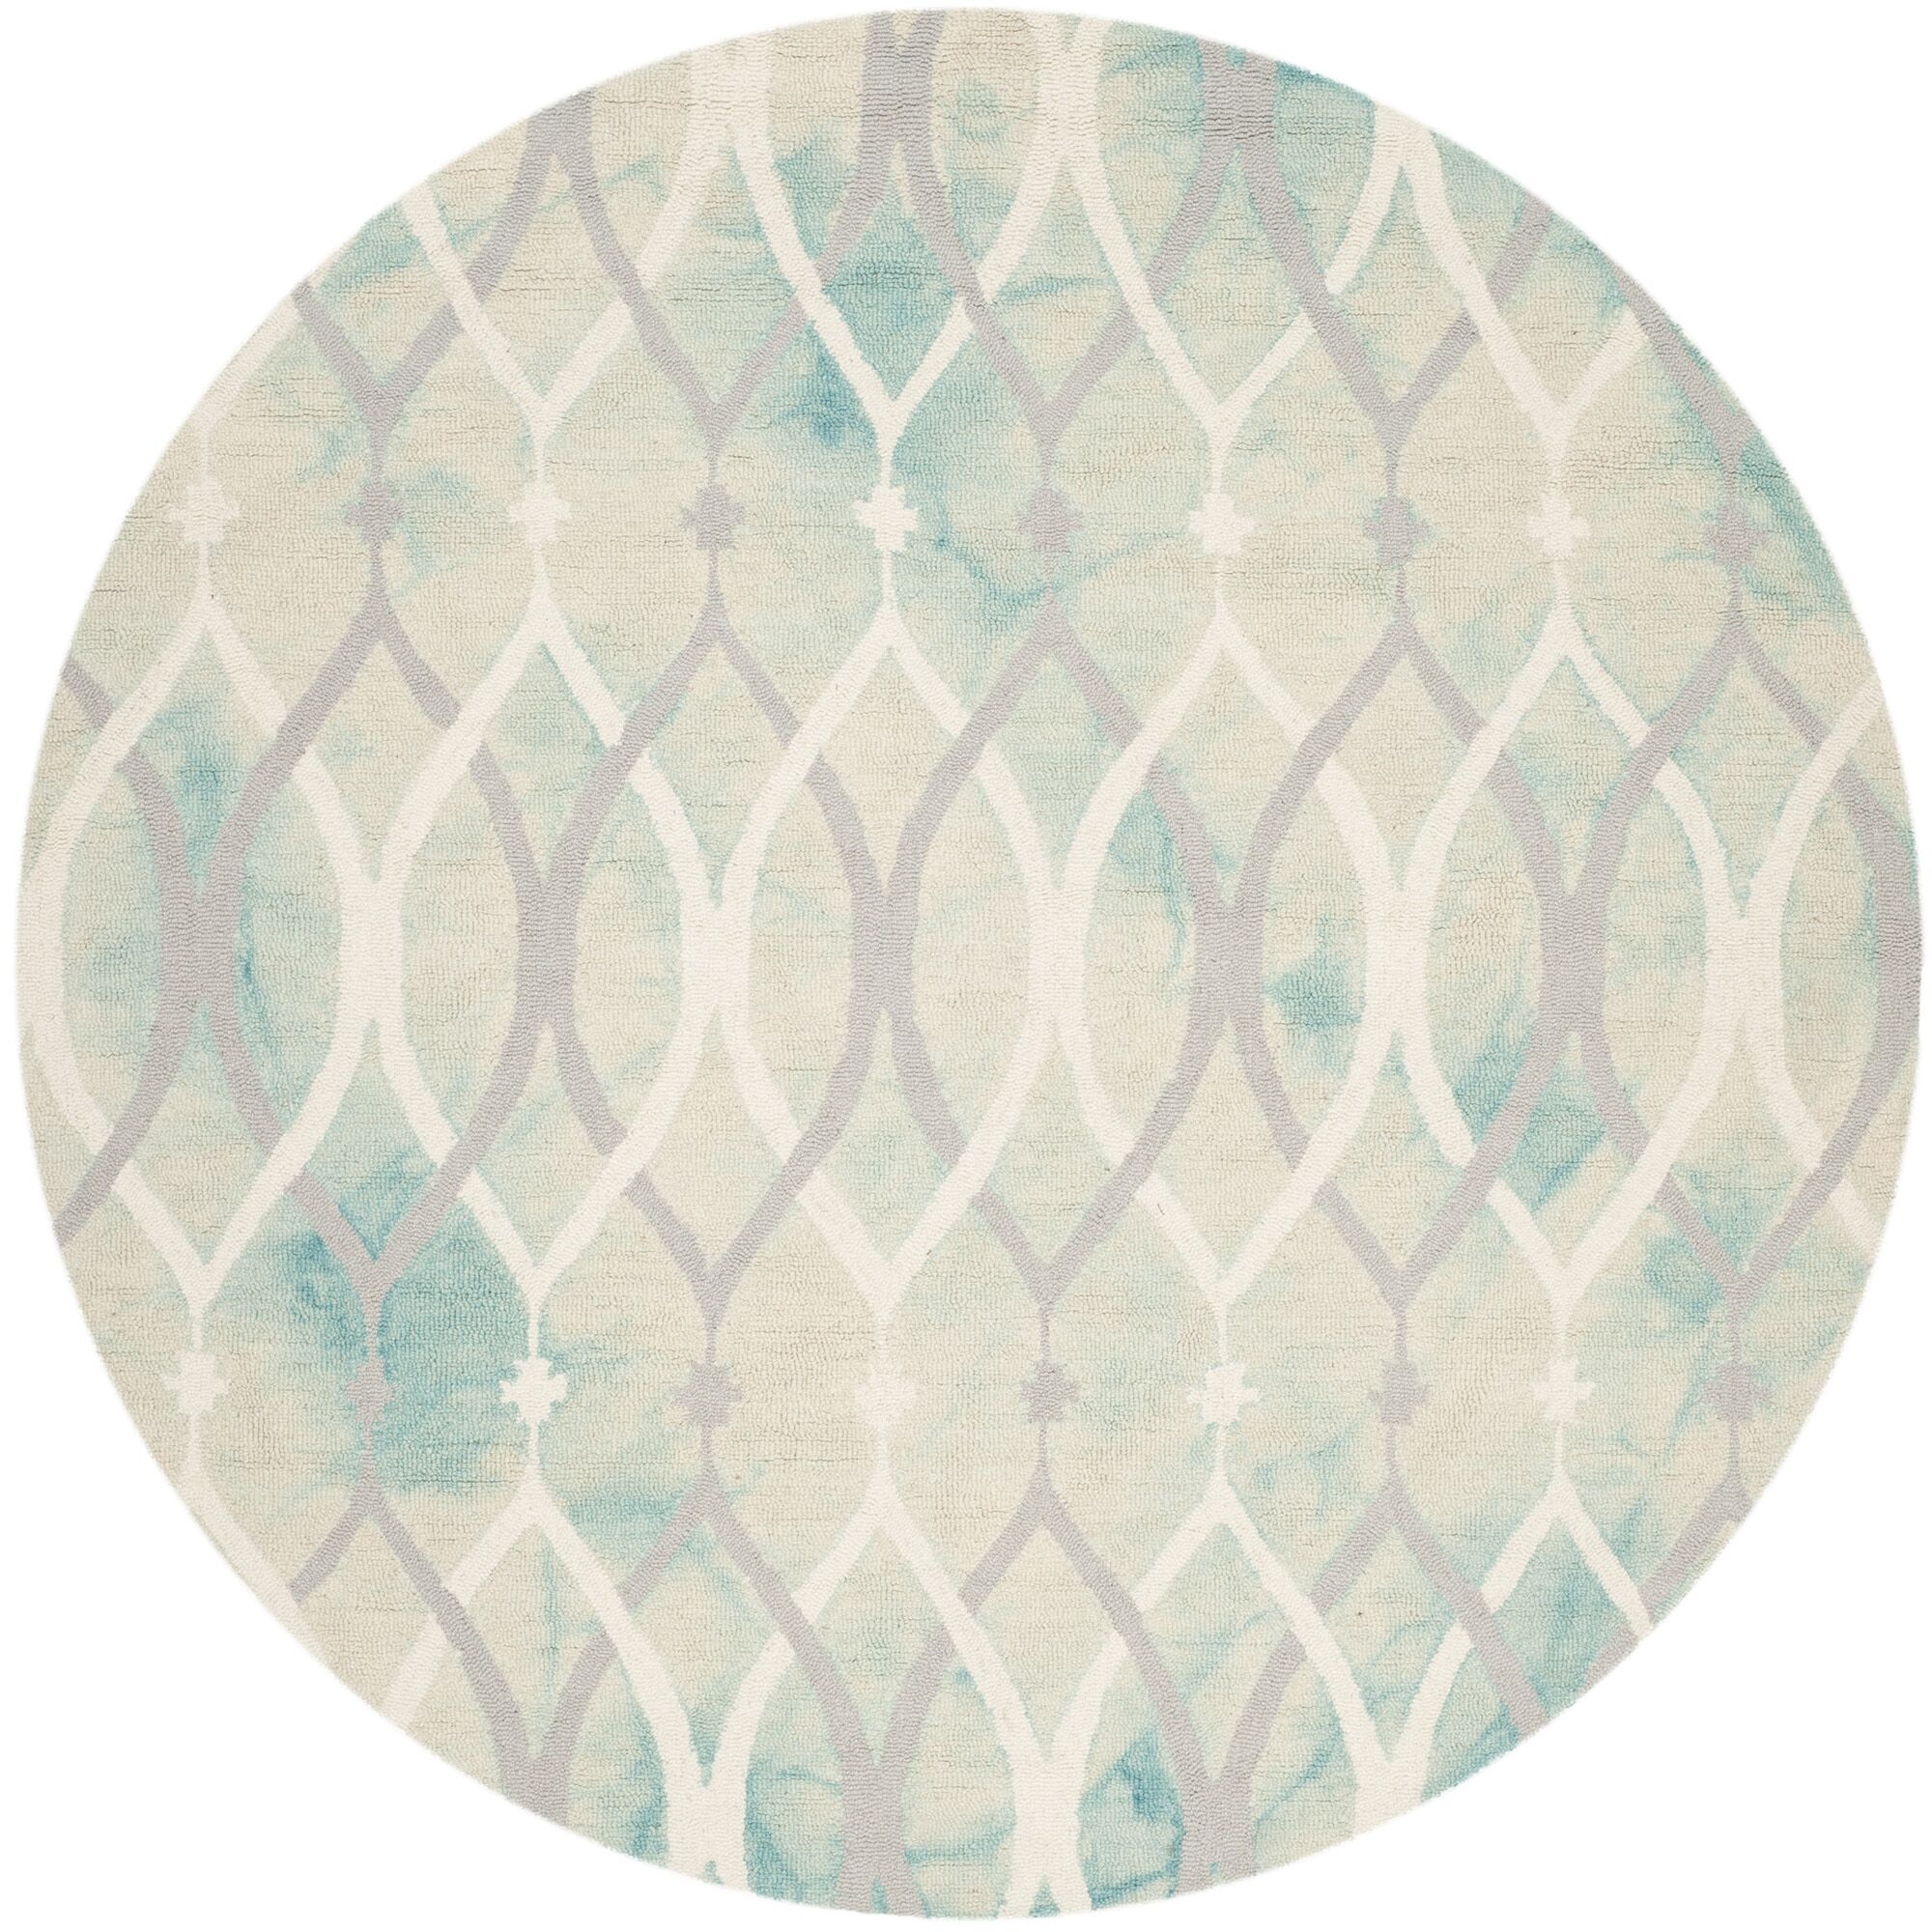 Clements Hand-Tufted Green/Ivory/Gray Area Rug Rug Size: Round 7'